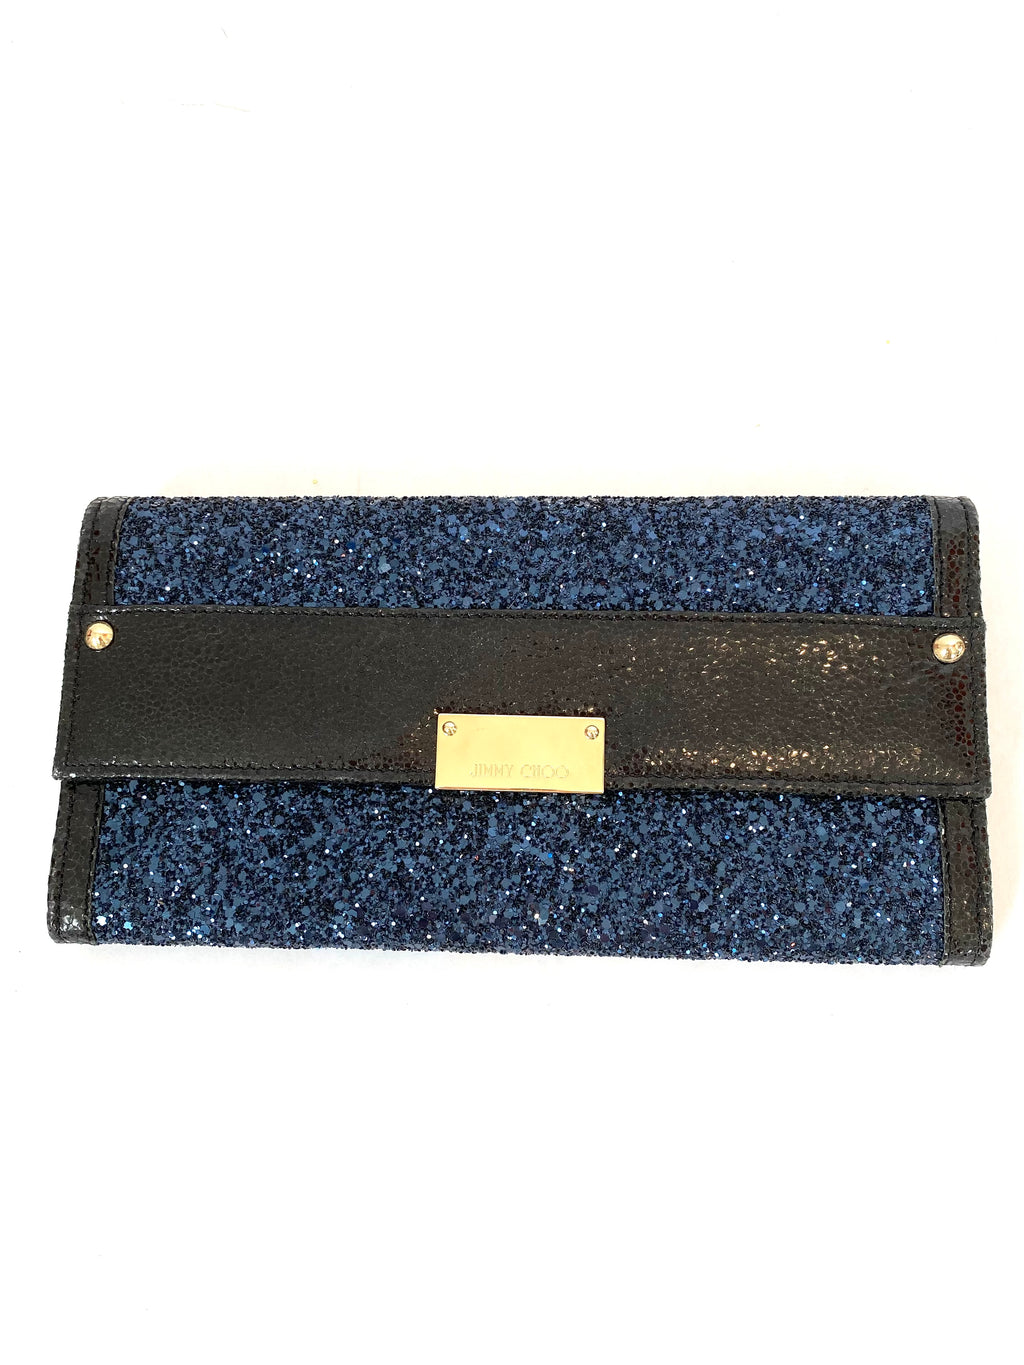 Jimmy Choo Navy Glitter and Leather Reese Wallet Clutch